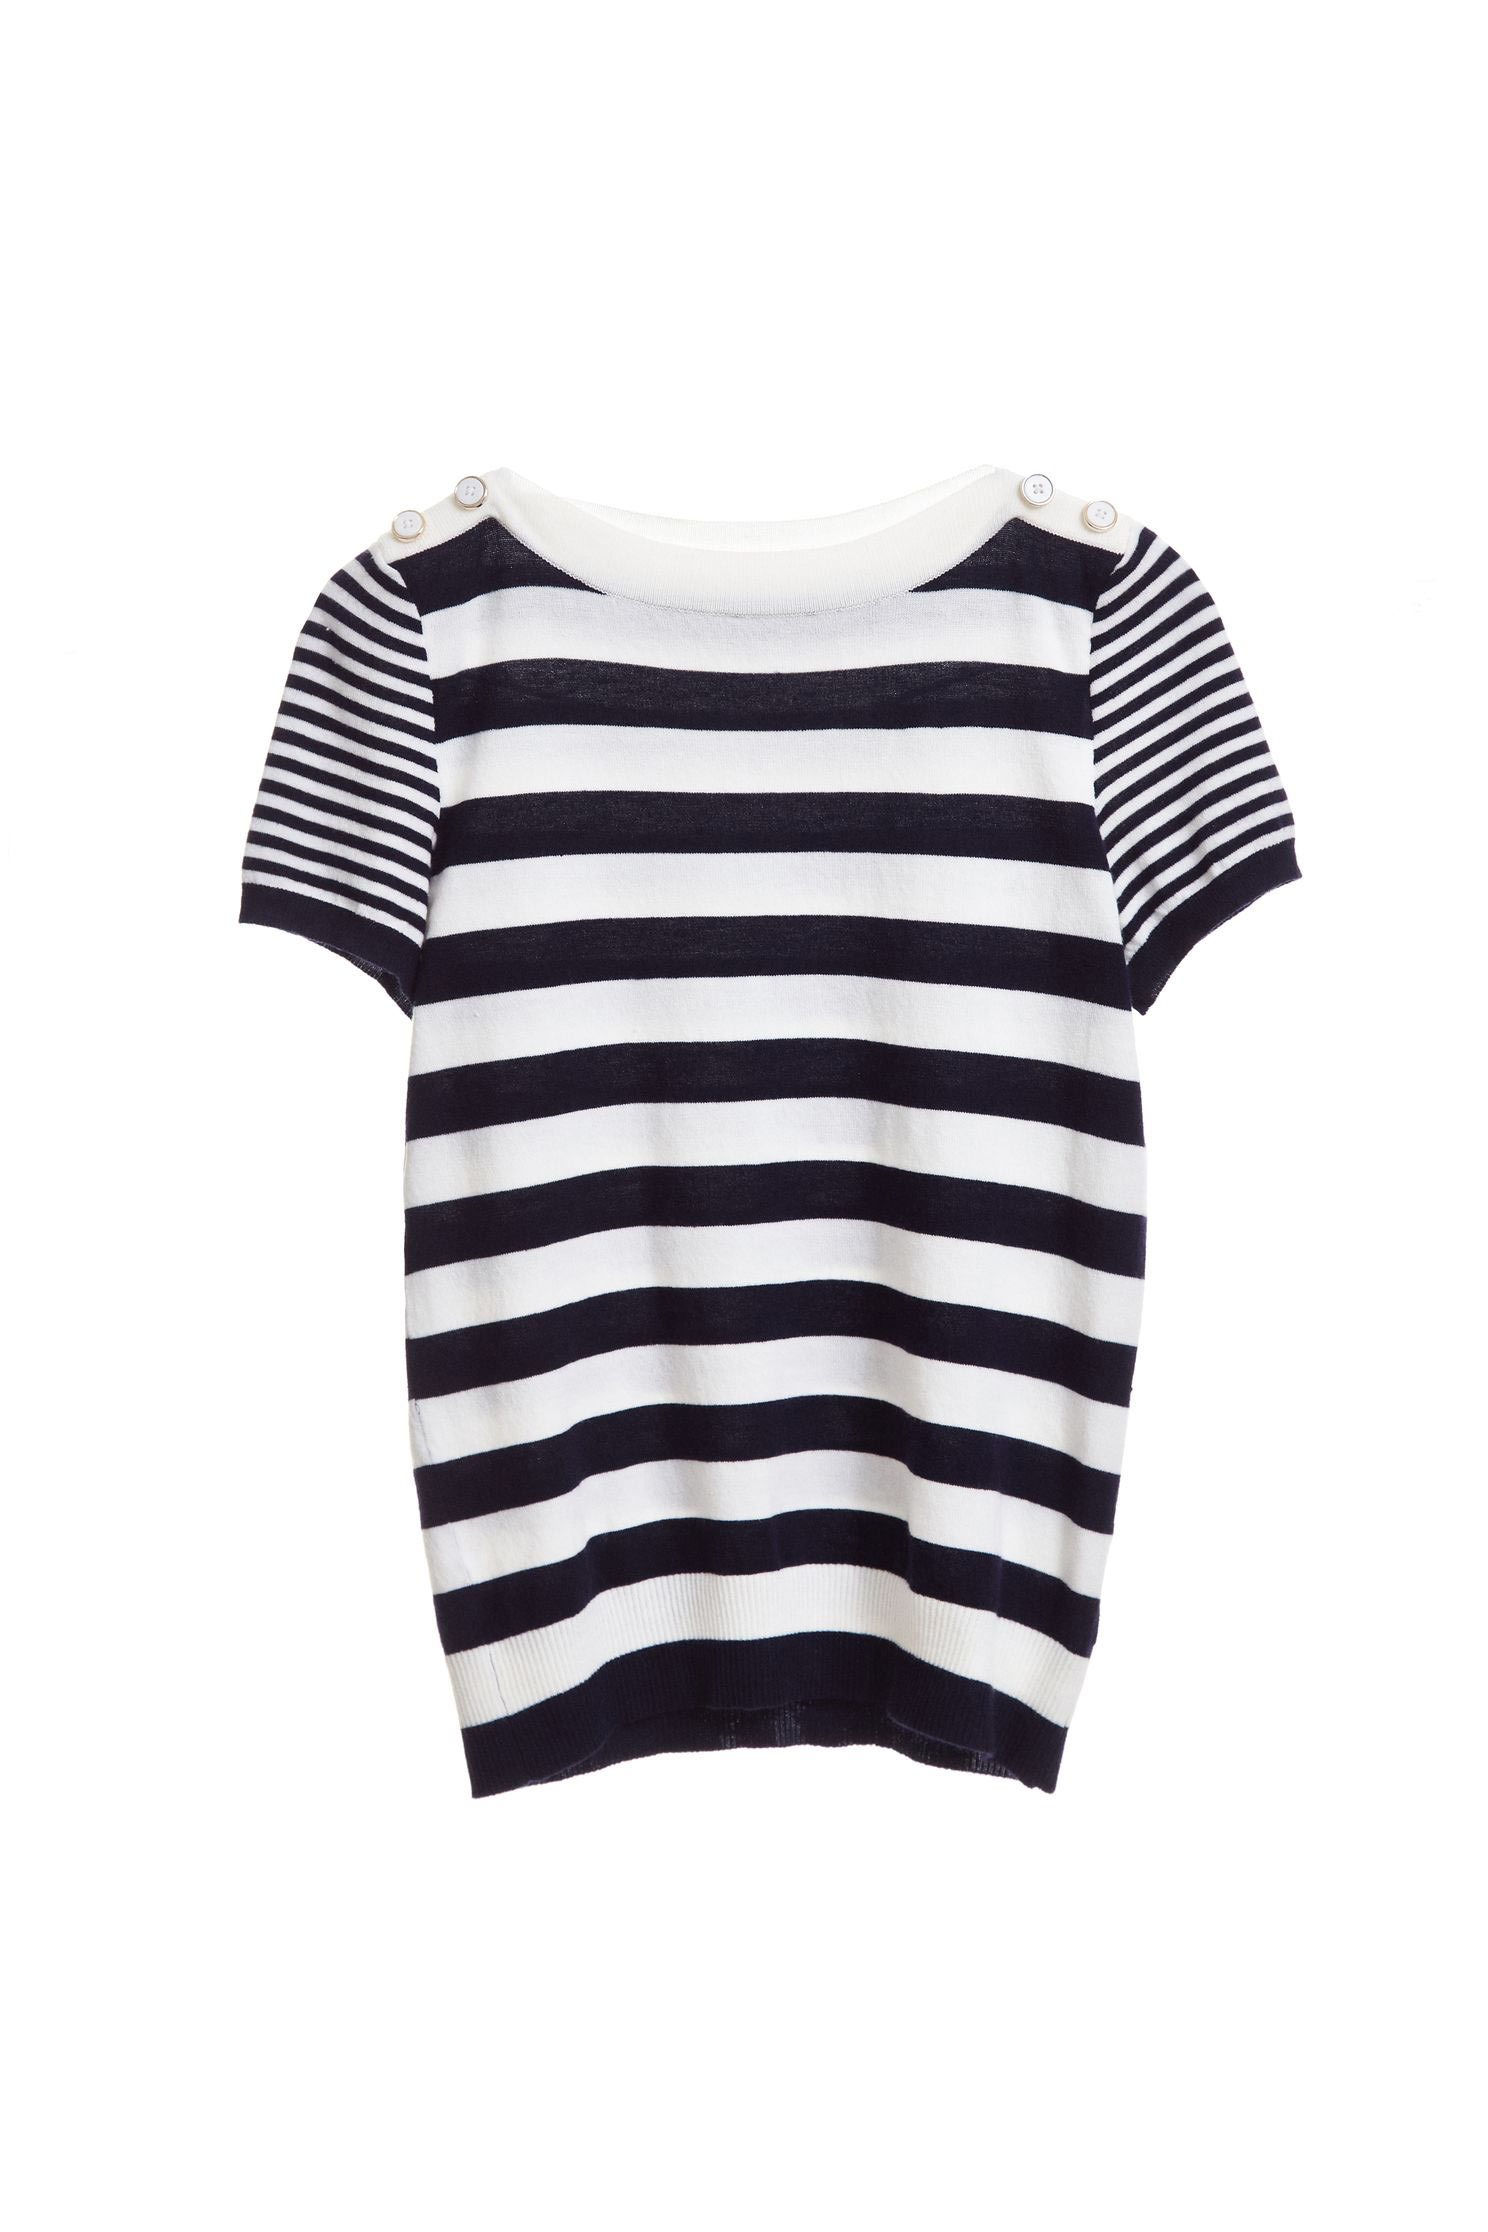 Striped stitching top,top,shortsleevetop